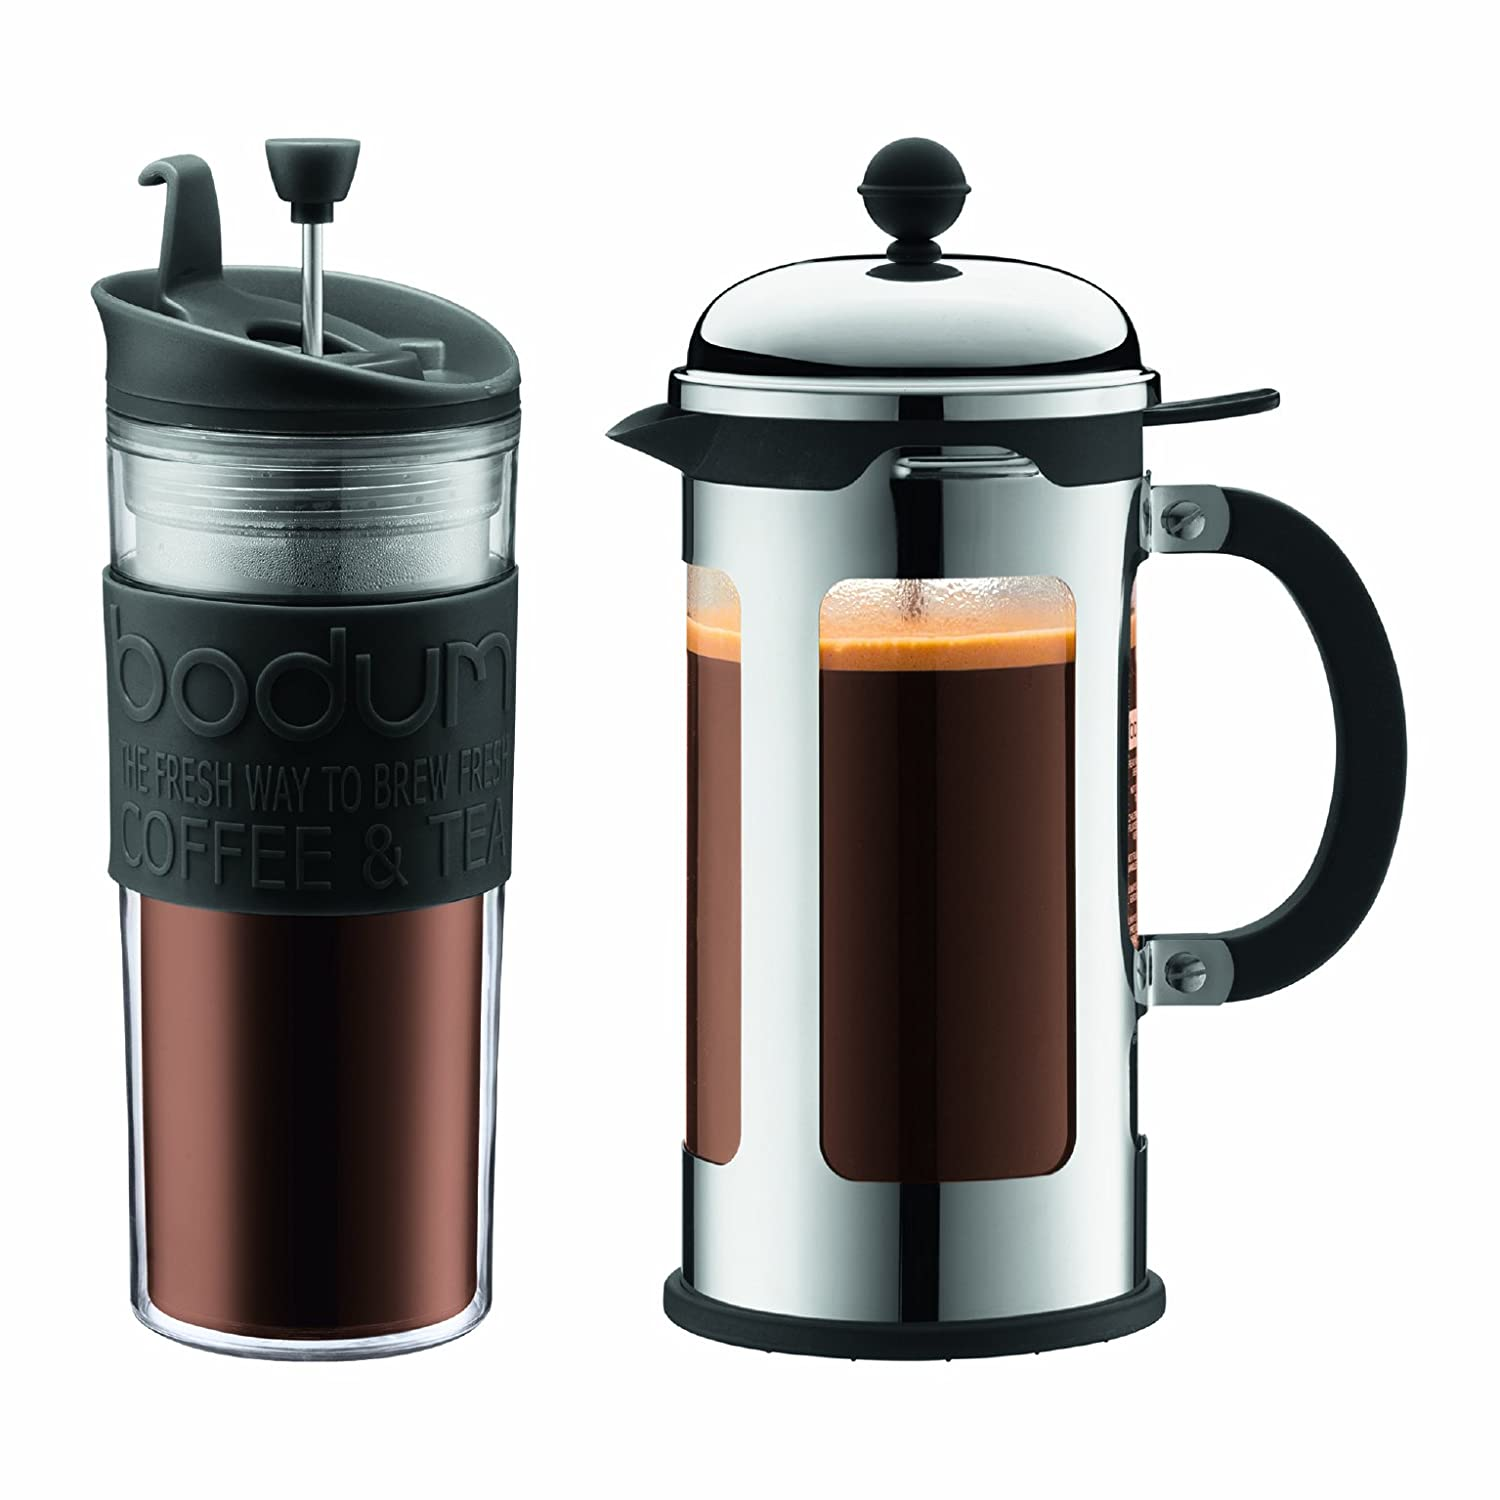 Bed bath beyond french press - Amazon Com Bodum Chambord 34 Ounce Locking Lid French Press Coffee Maker 8 Cup With Bonus 15 Ounce Travel Press And Lid Kitchen Dining